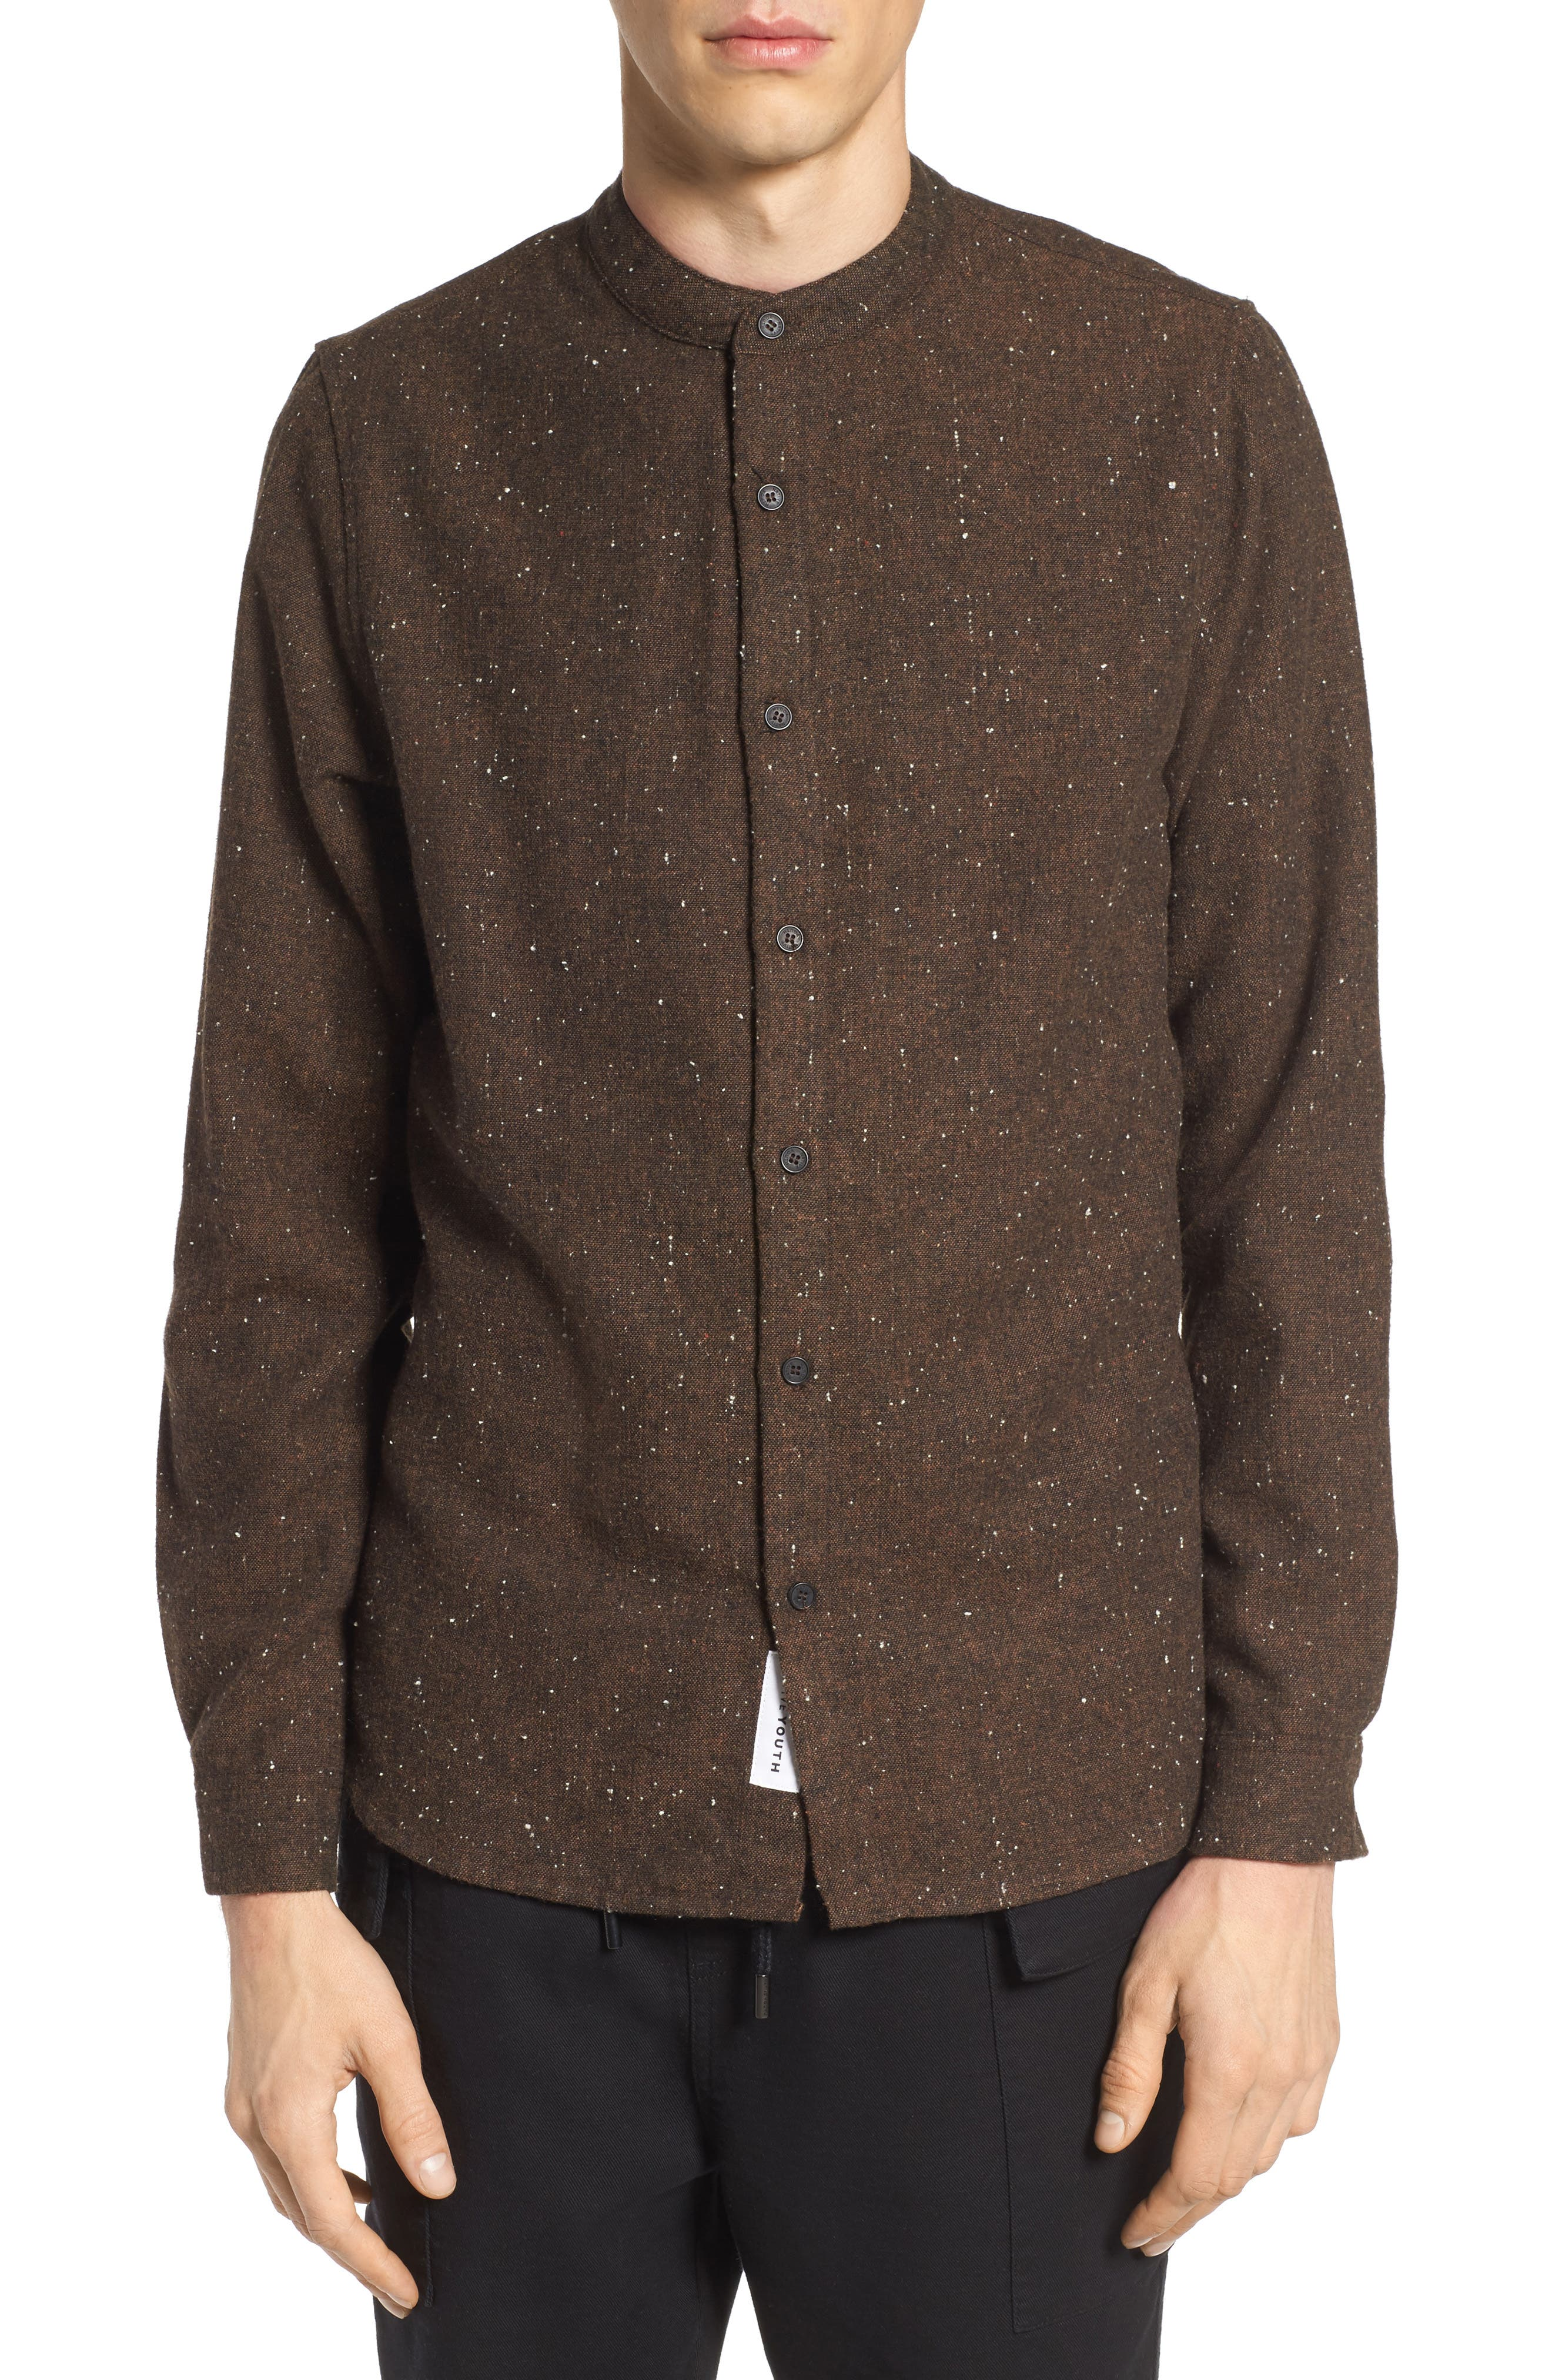 Alford Nep Shirt,                             Main thumbnail 1, color,                             Brown